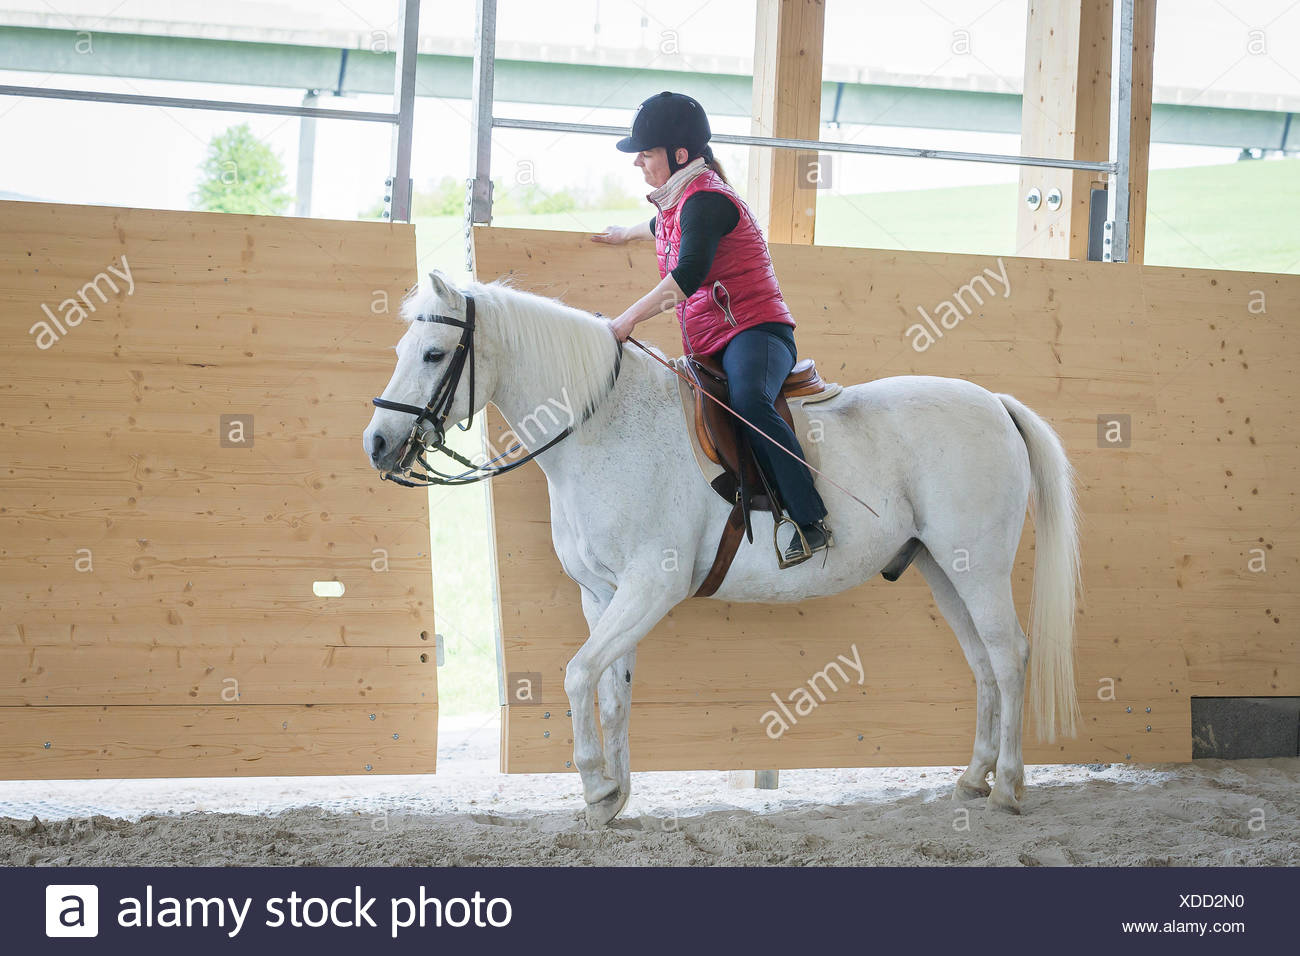 German Riding Pony Reiter White pony Openning die Tür Reithalle Stockbild